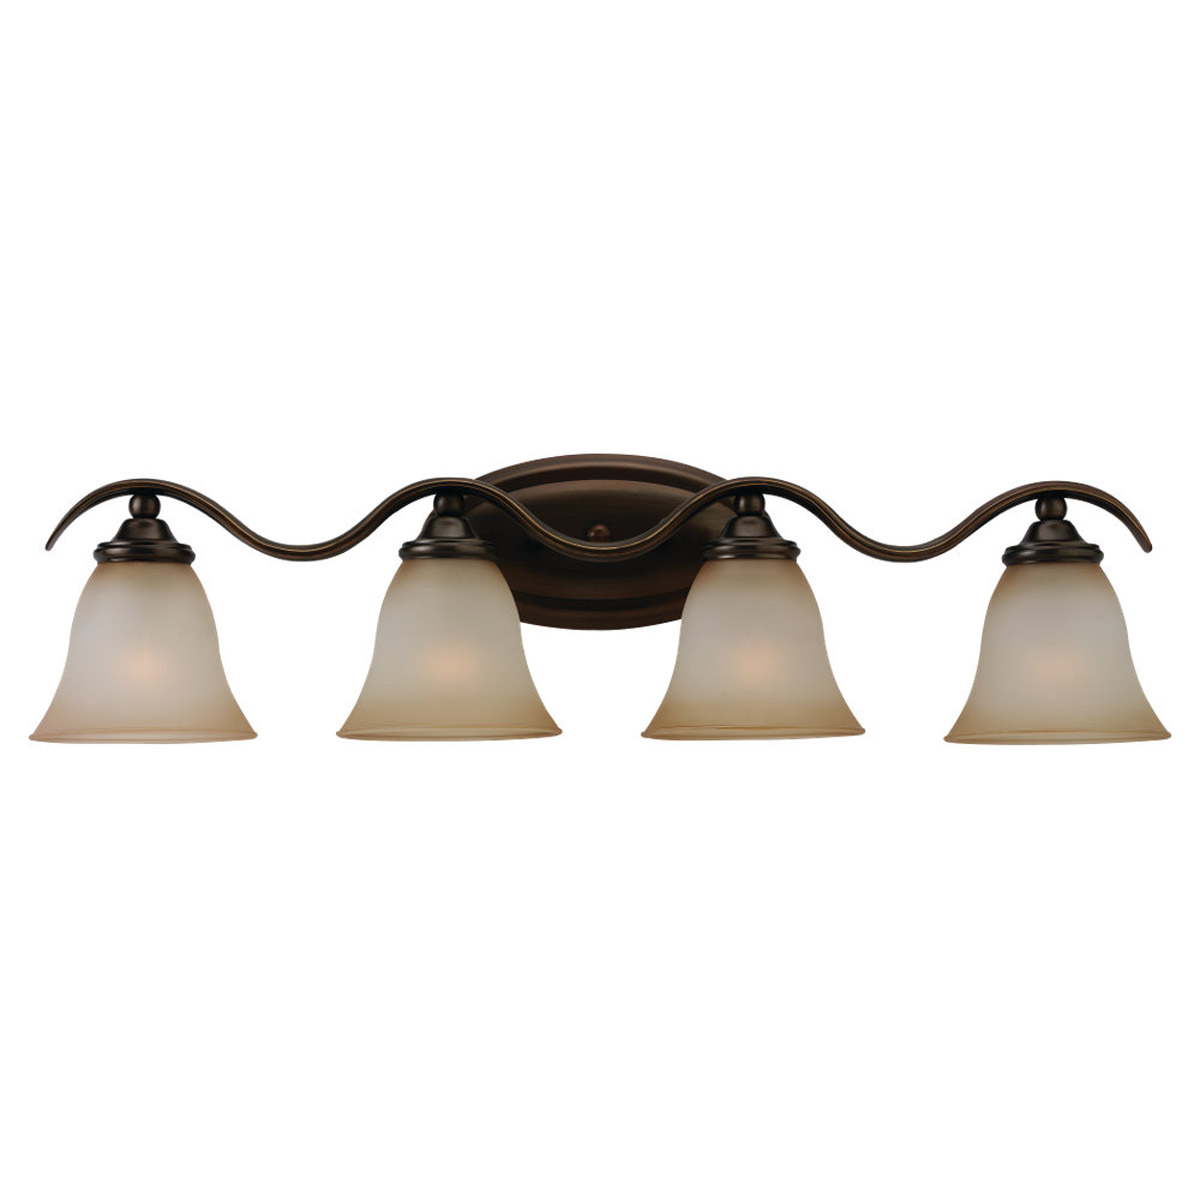 Sea Gull 44362-829 Rialto 4 Light 30 inch Russet Bronze Bath Vanity Wall Light in Ginger Glass photo